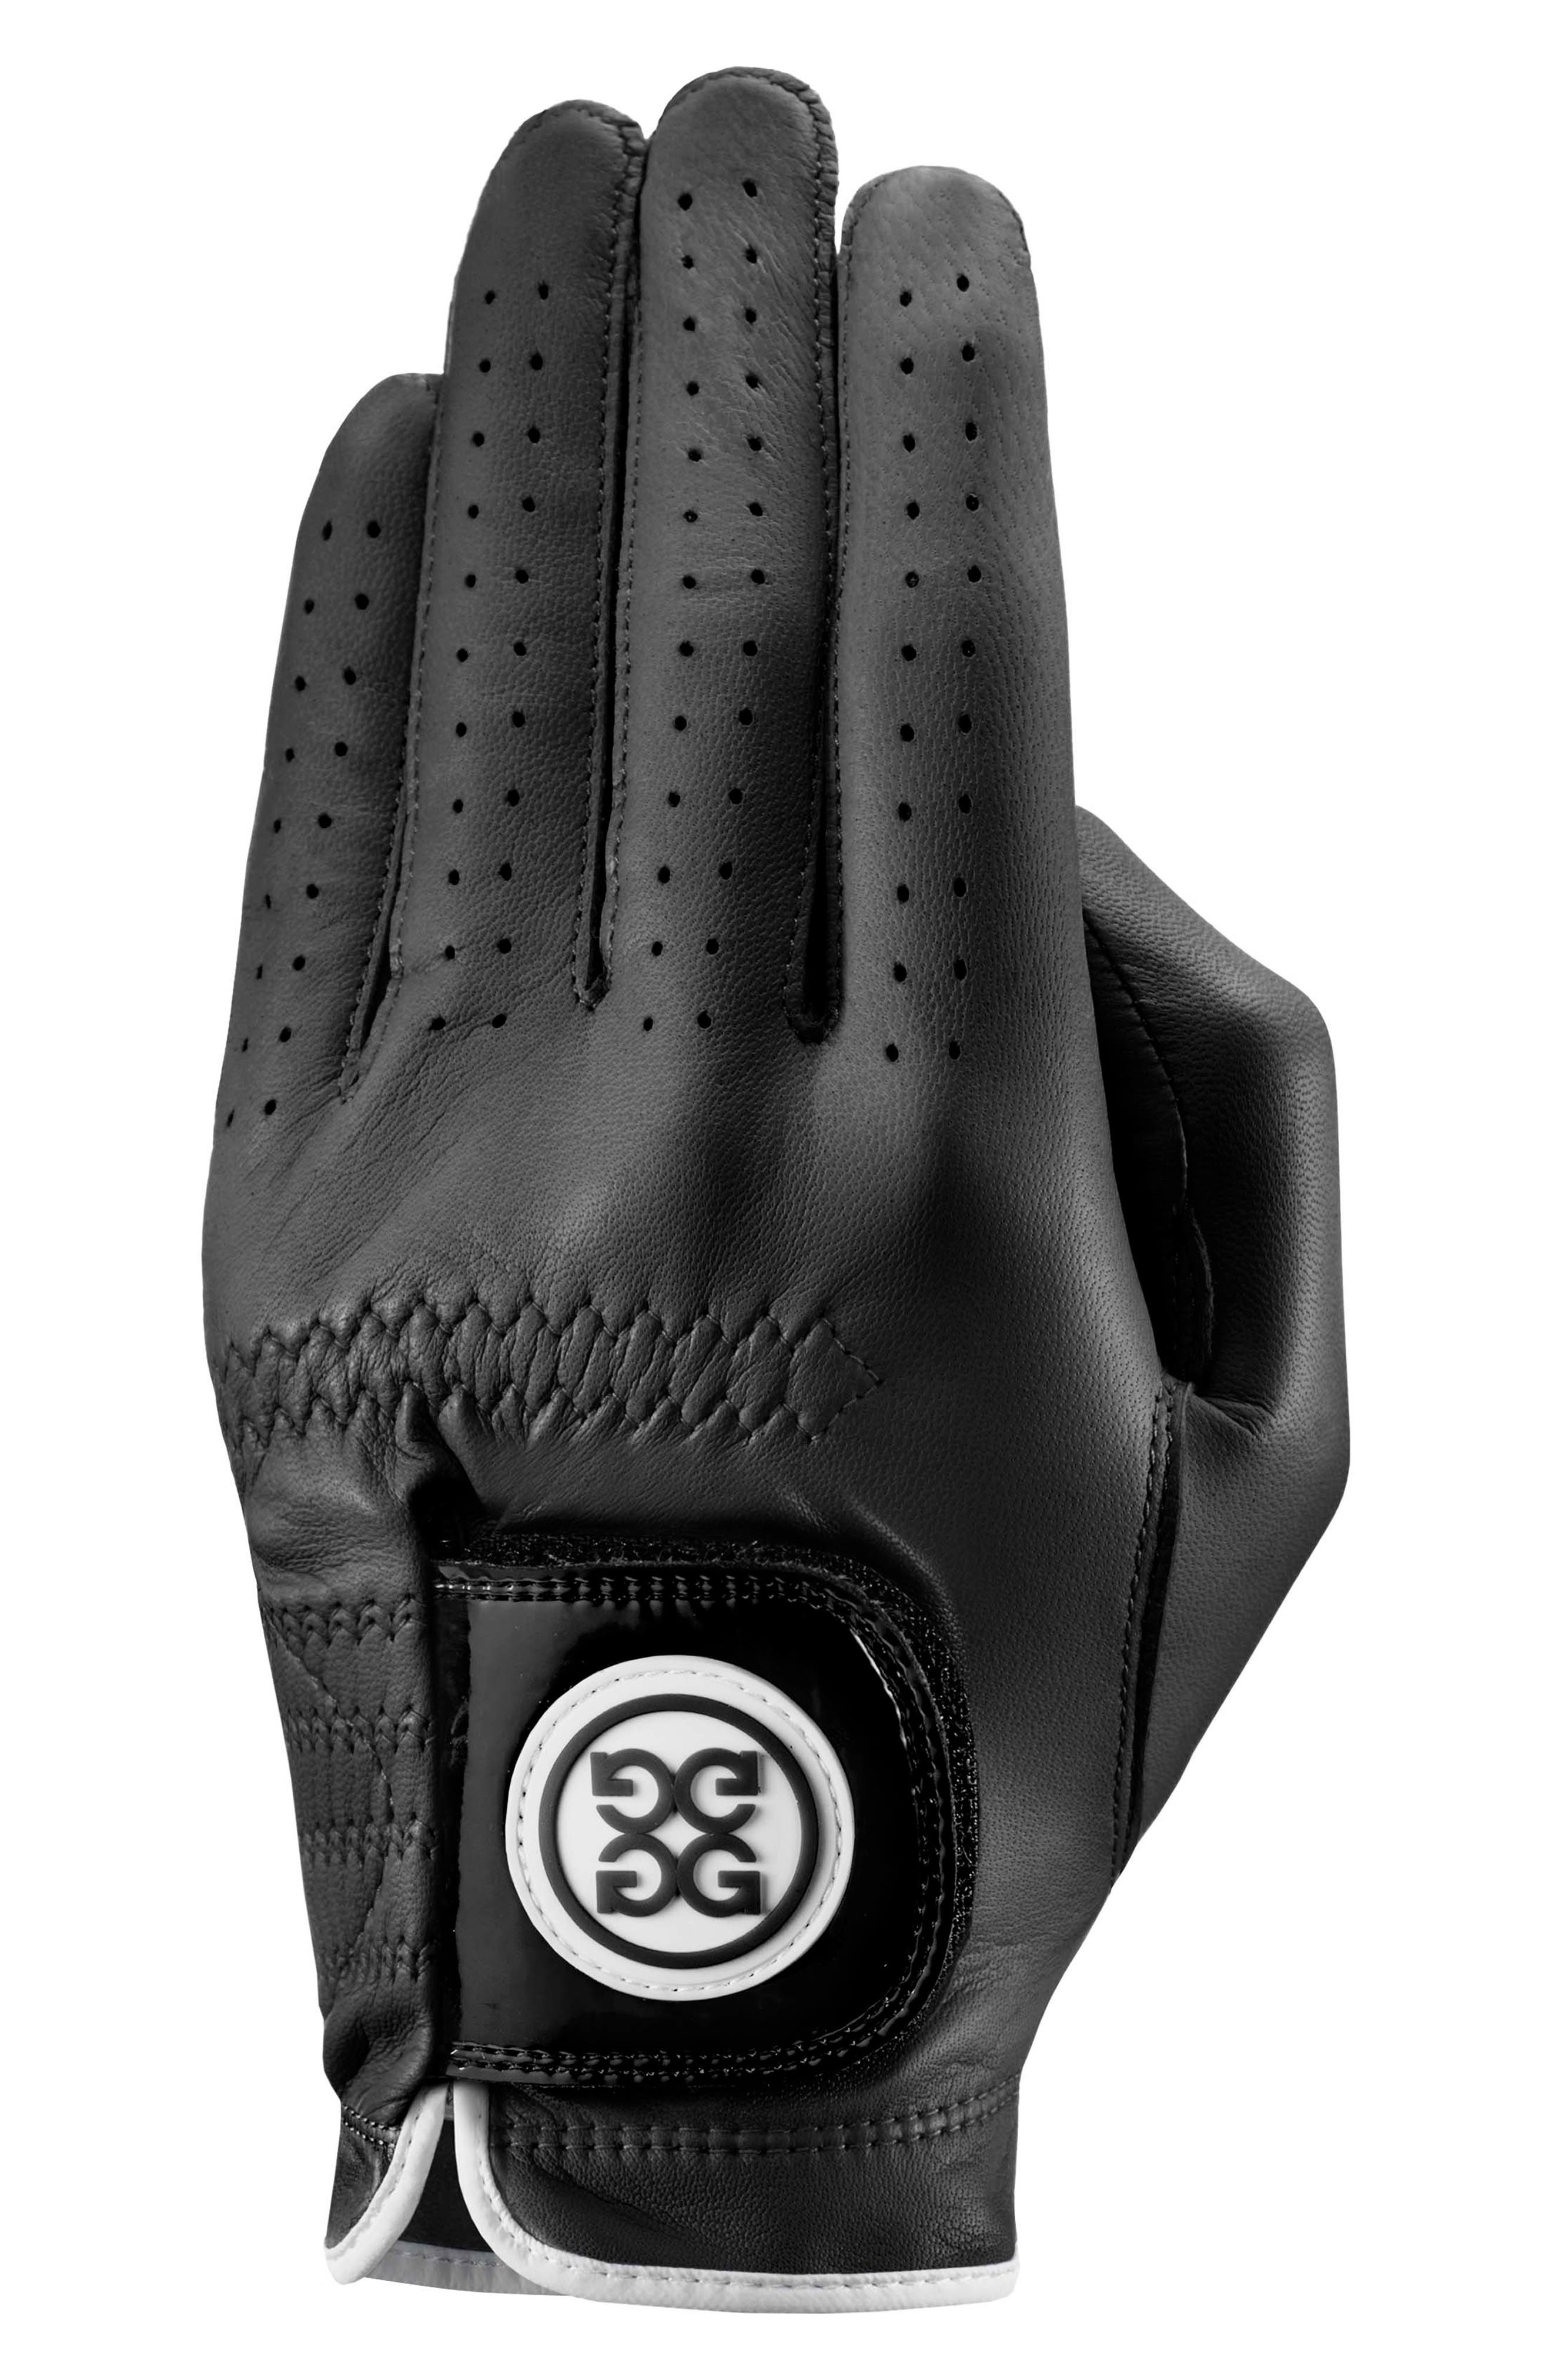 G/fore The Collection Leather Golf Glove, Black